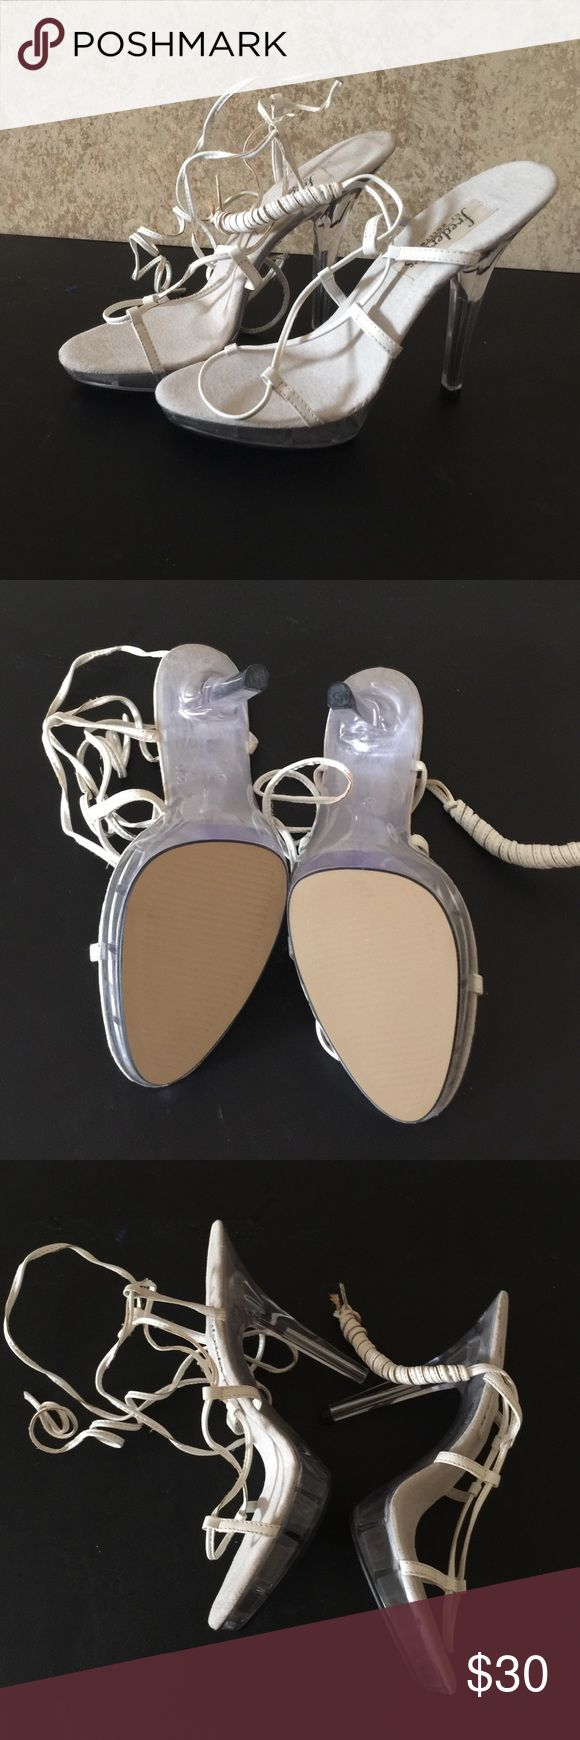 """Frederick's of Hollywood  white lace up heels 10 Brand new lace up heels. Clear 3.5"""" heel with 2"""" flatform. I measure the heel from the inside not the backside. White leather tie up. Size 10 Frederick's of Hollywood Shoes Heels"""